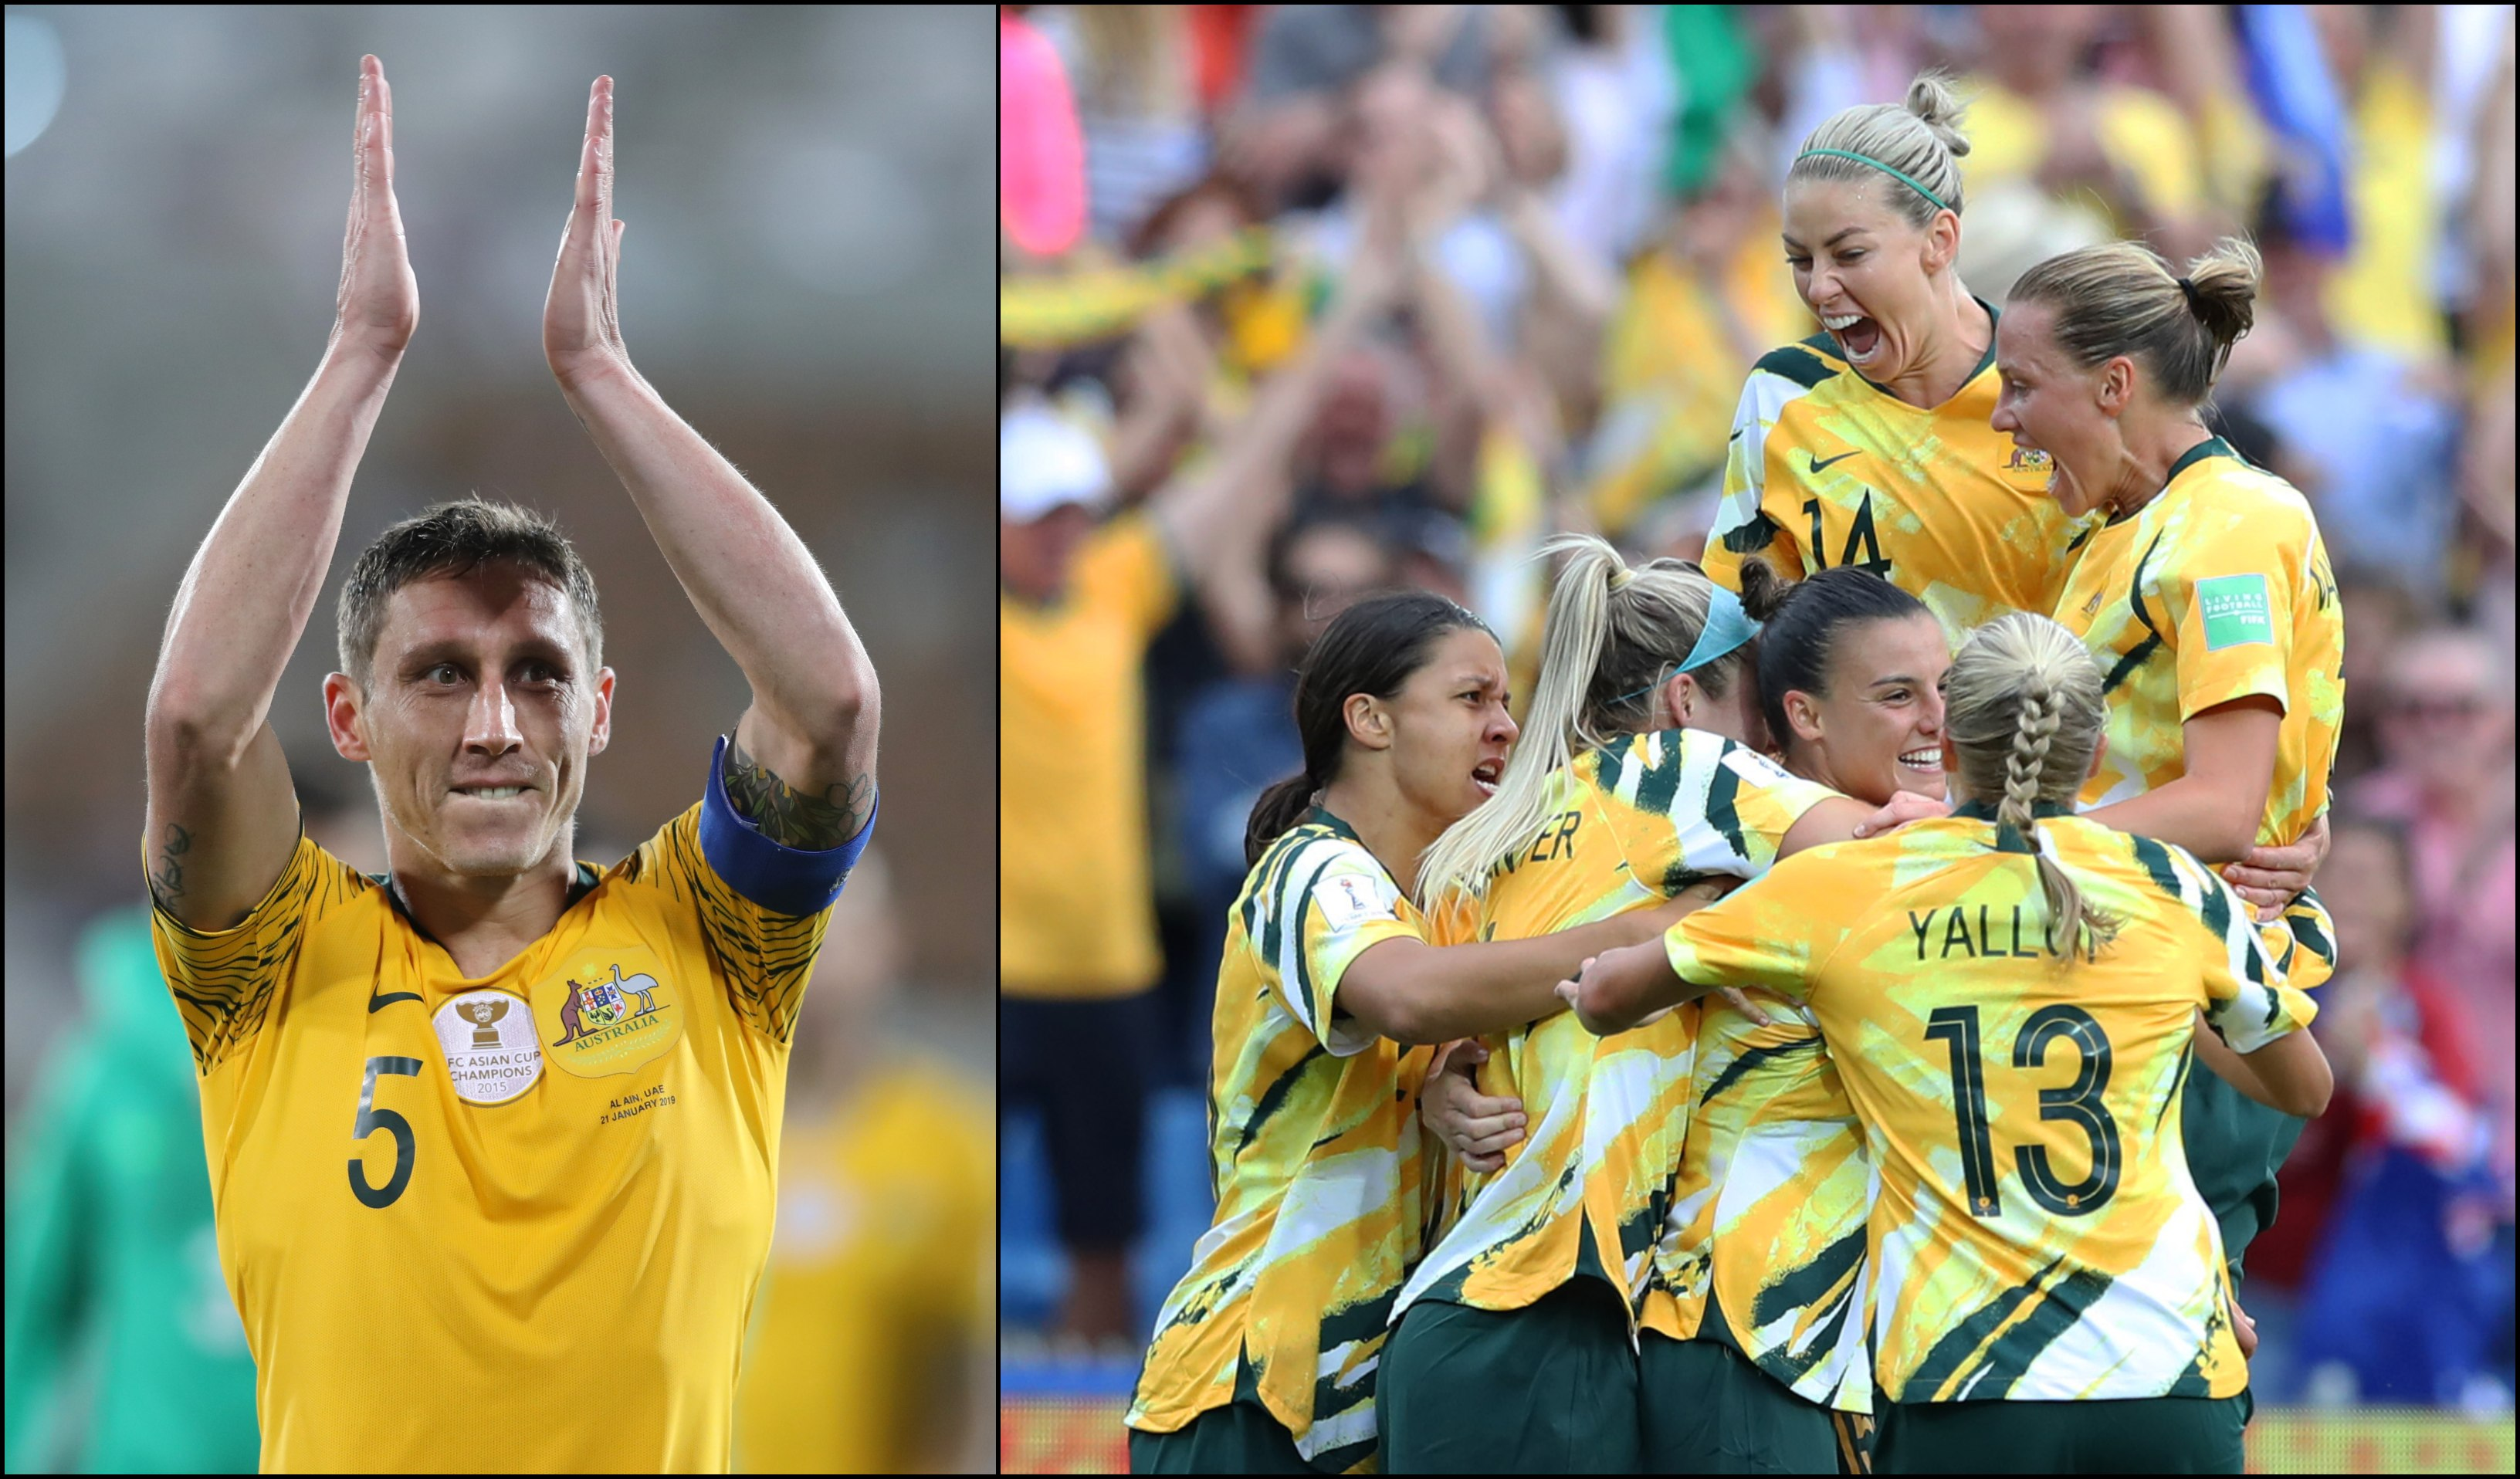 5a1bb6bddfa 'That sums up their passion': Caltex Socceroos skipper witnesses awesome  Matildas moment